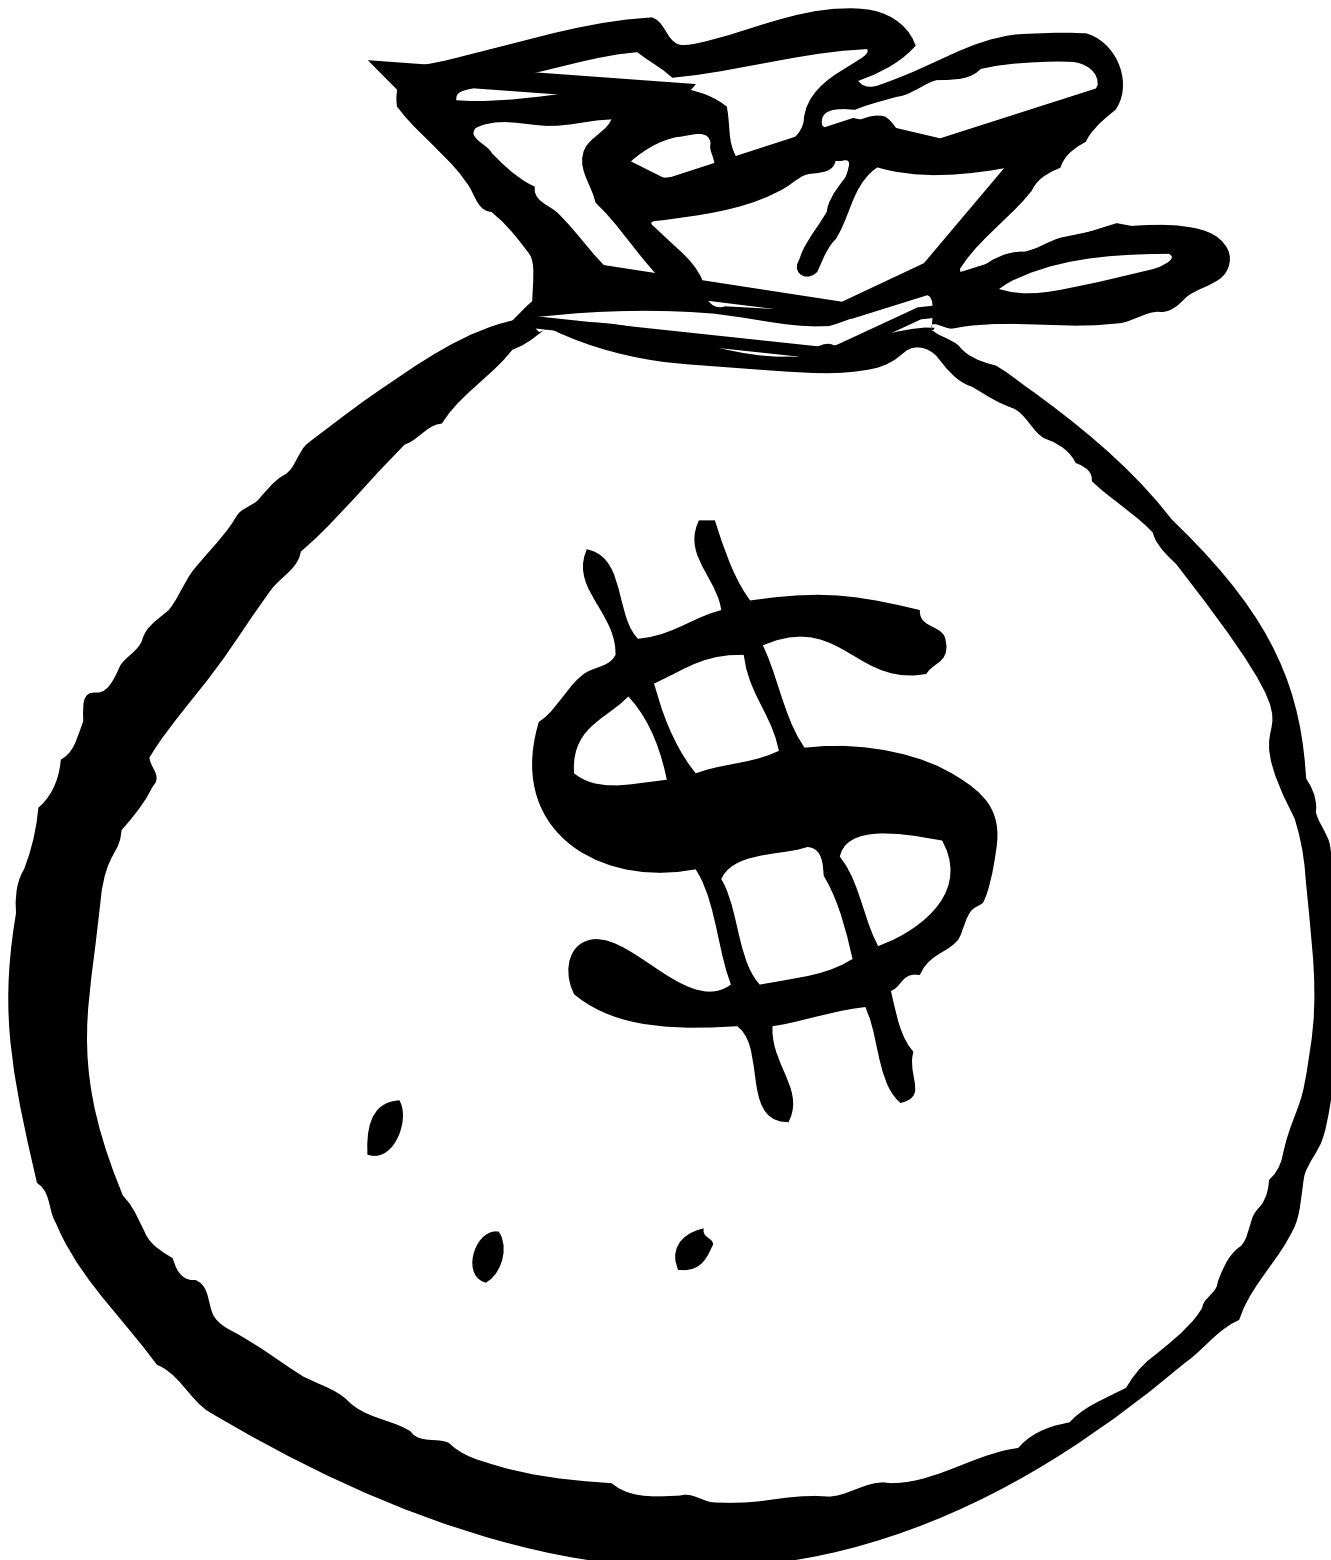 Free Money Tattoo Pictures Download Free Clip Art Free